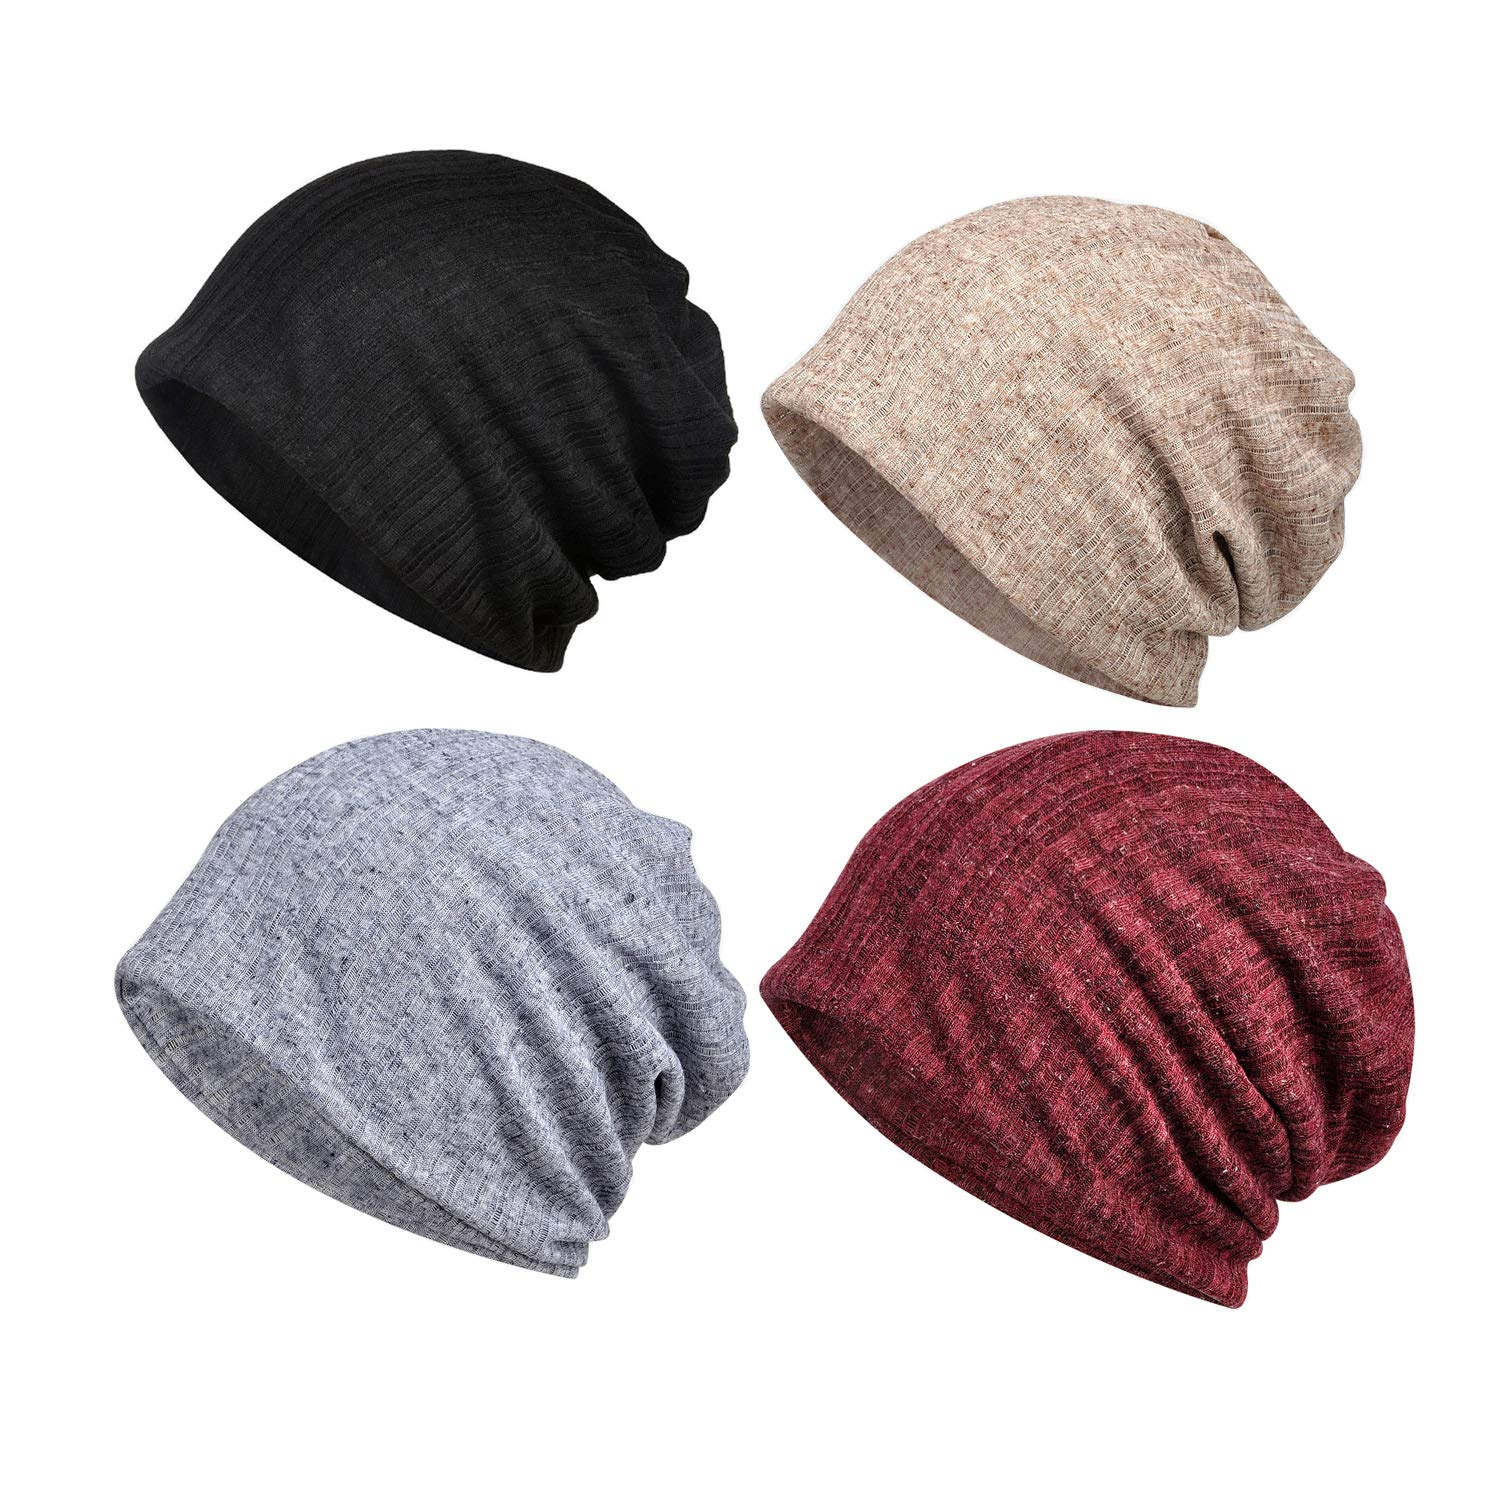 Cotton Fashion Beanies Chemo Caps Cancer Headwear Skull Cap Knitted hat Scarf for Womens Mens (4Pack-c)